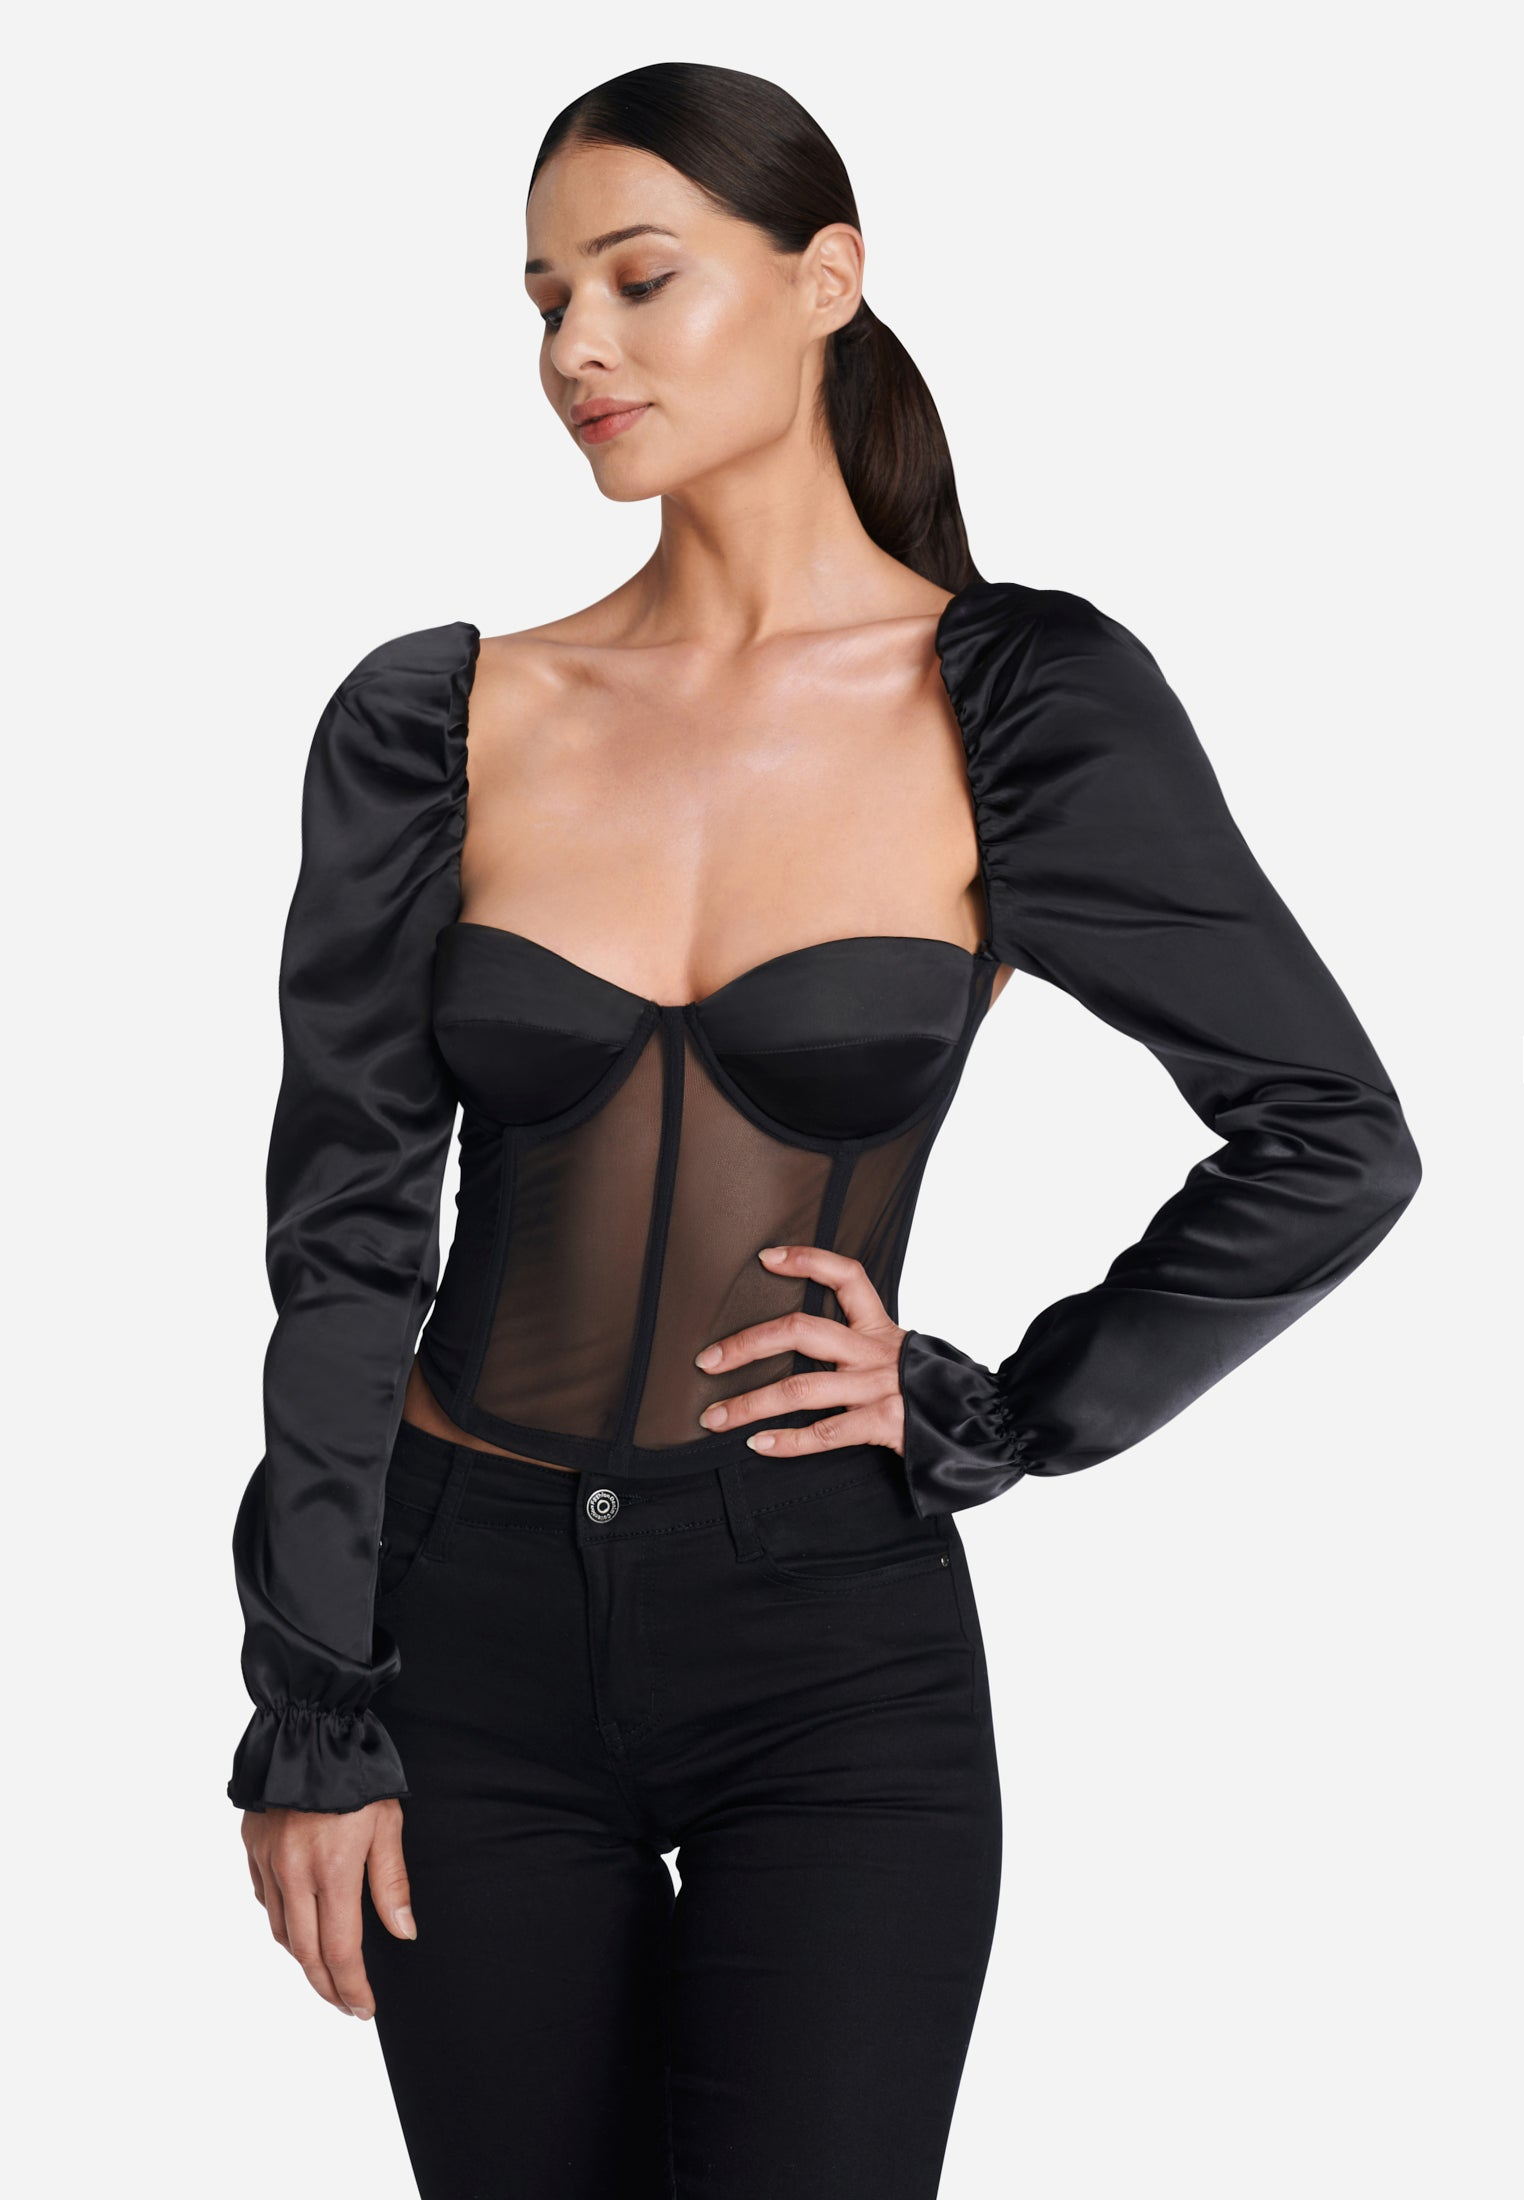 OW INTIMATES SHAE Top Top 002 - Black Caviar